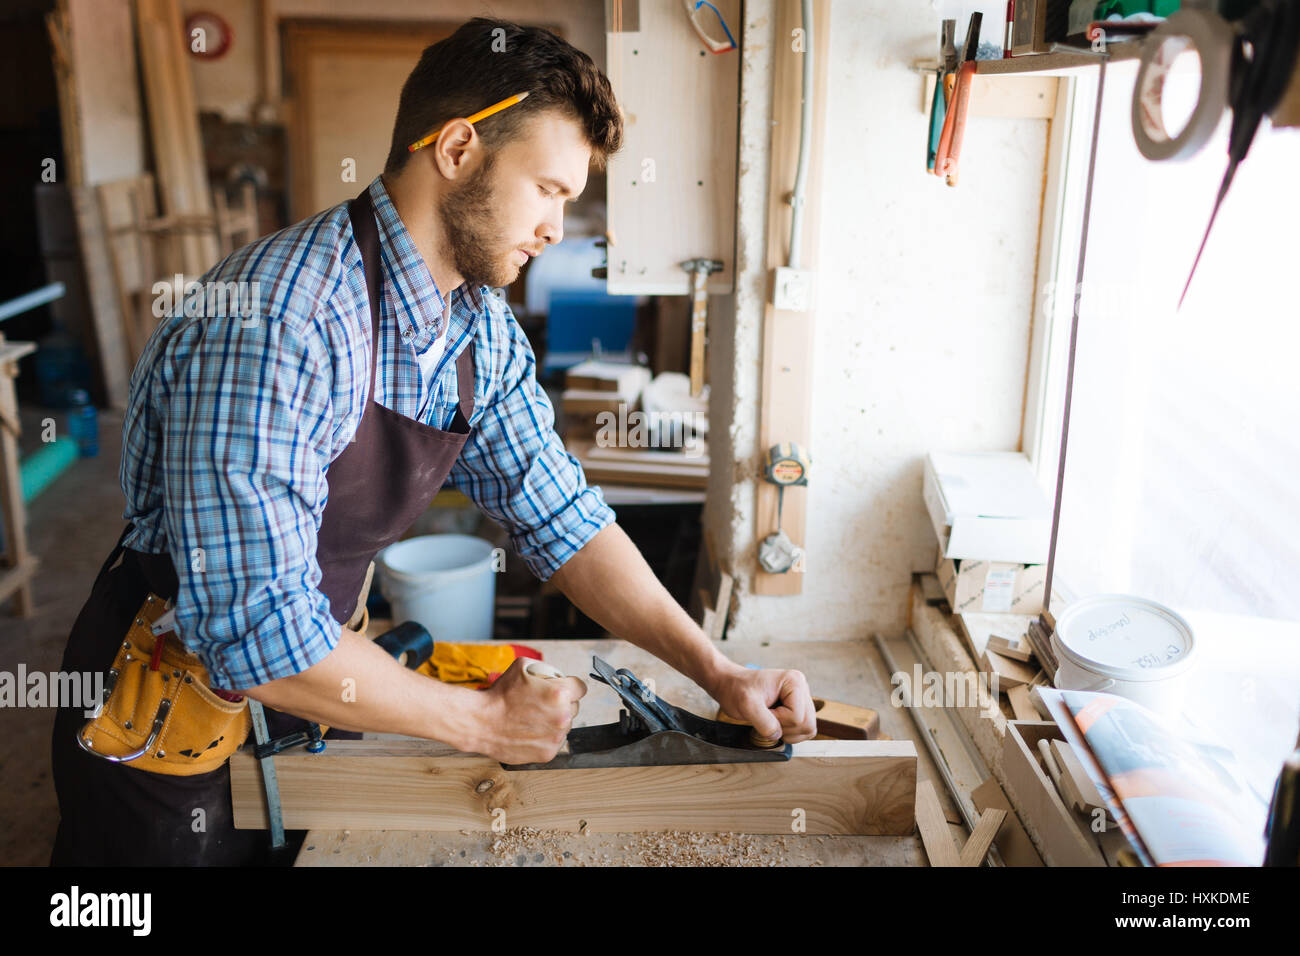 Concentrated woodworker in workshop - Stock Image